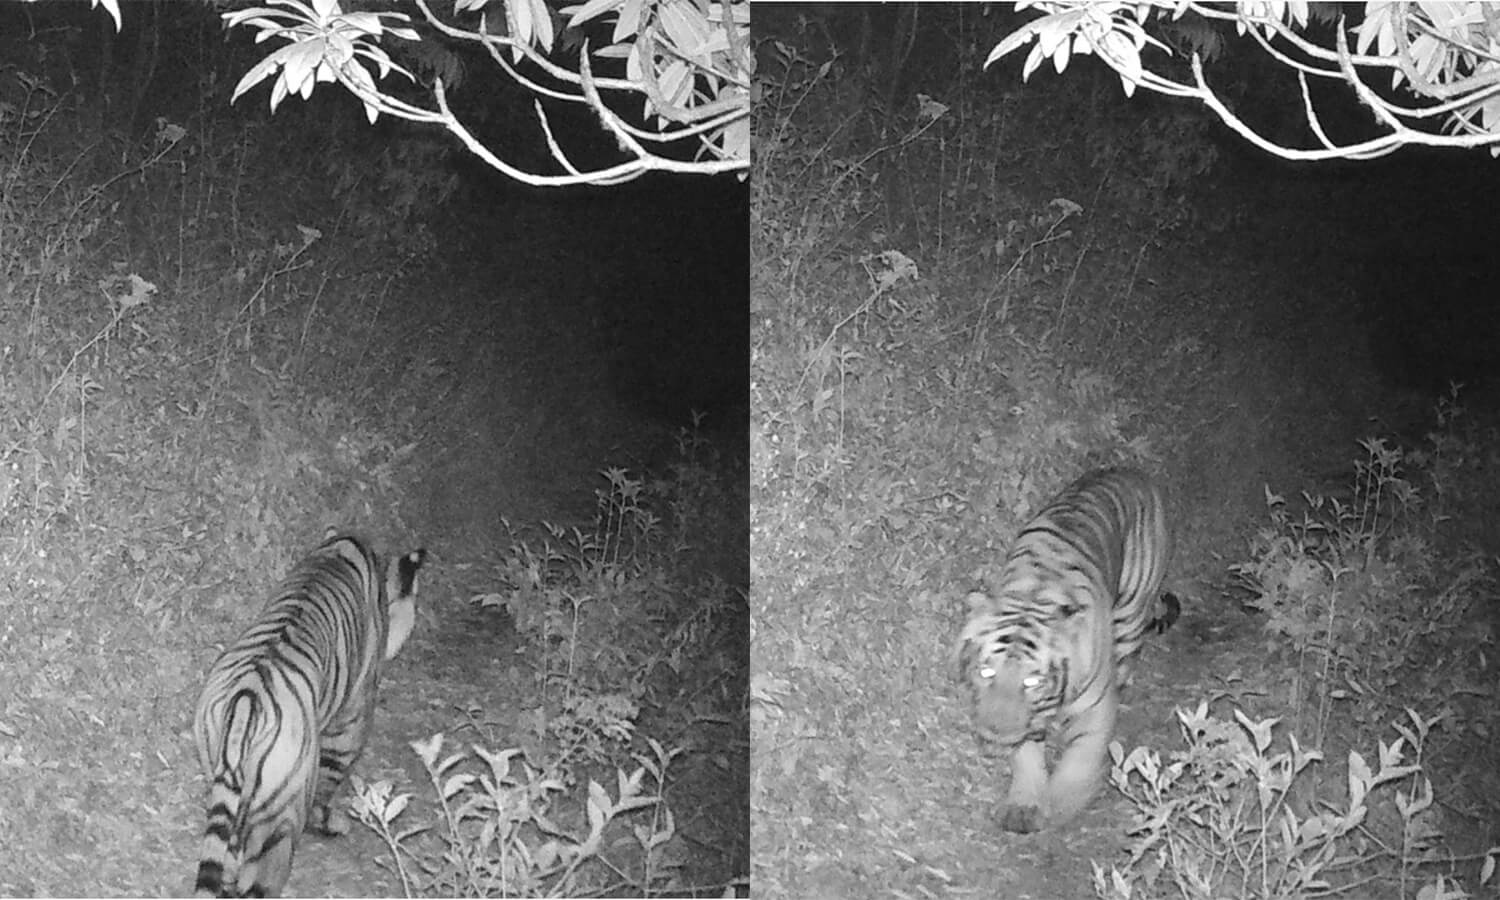 Nepal's highest-ever tiger sighting